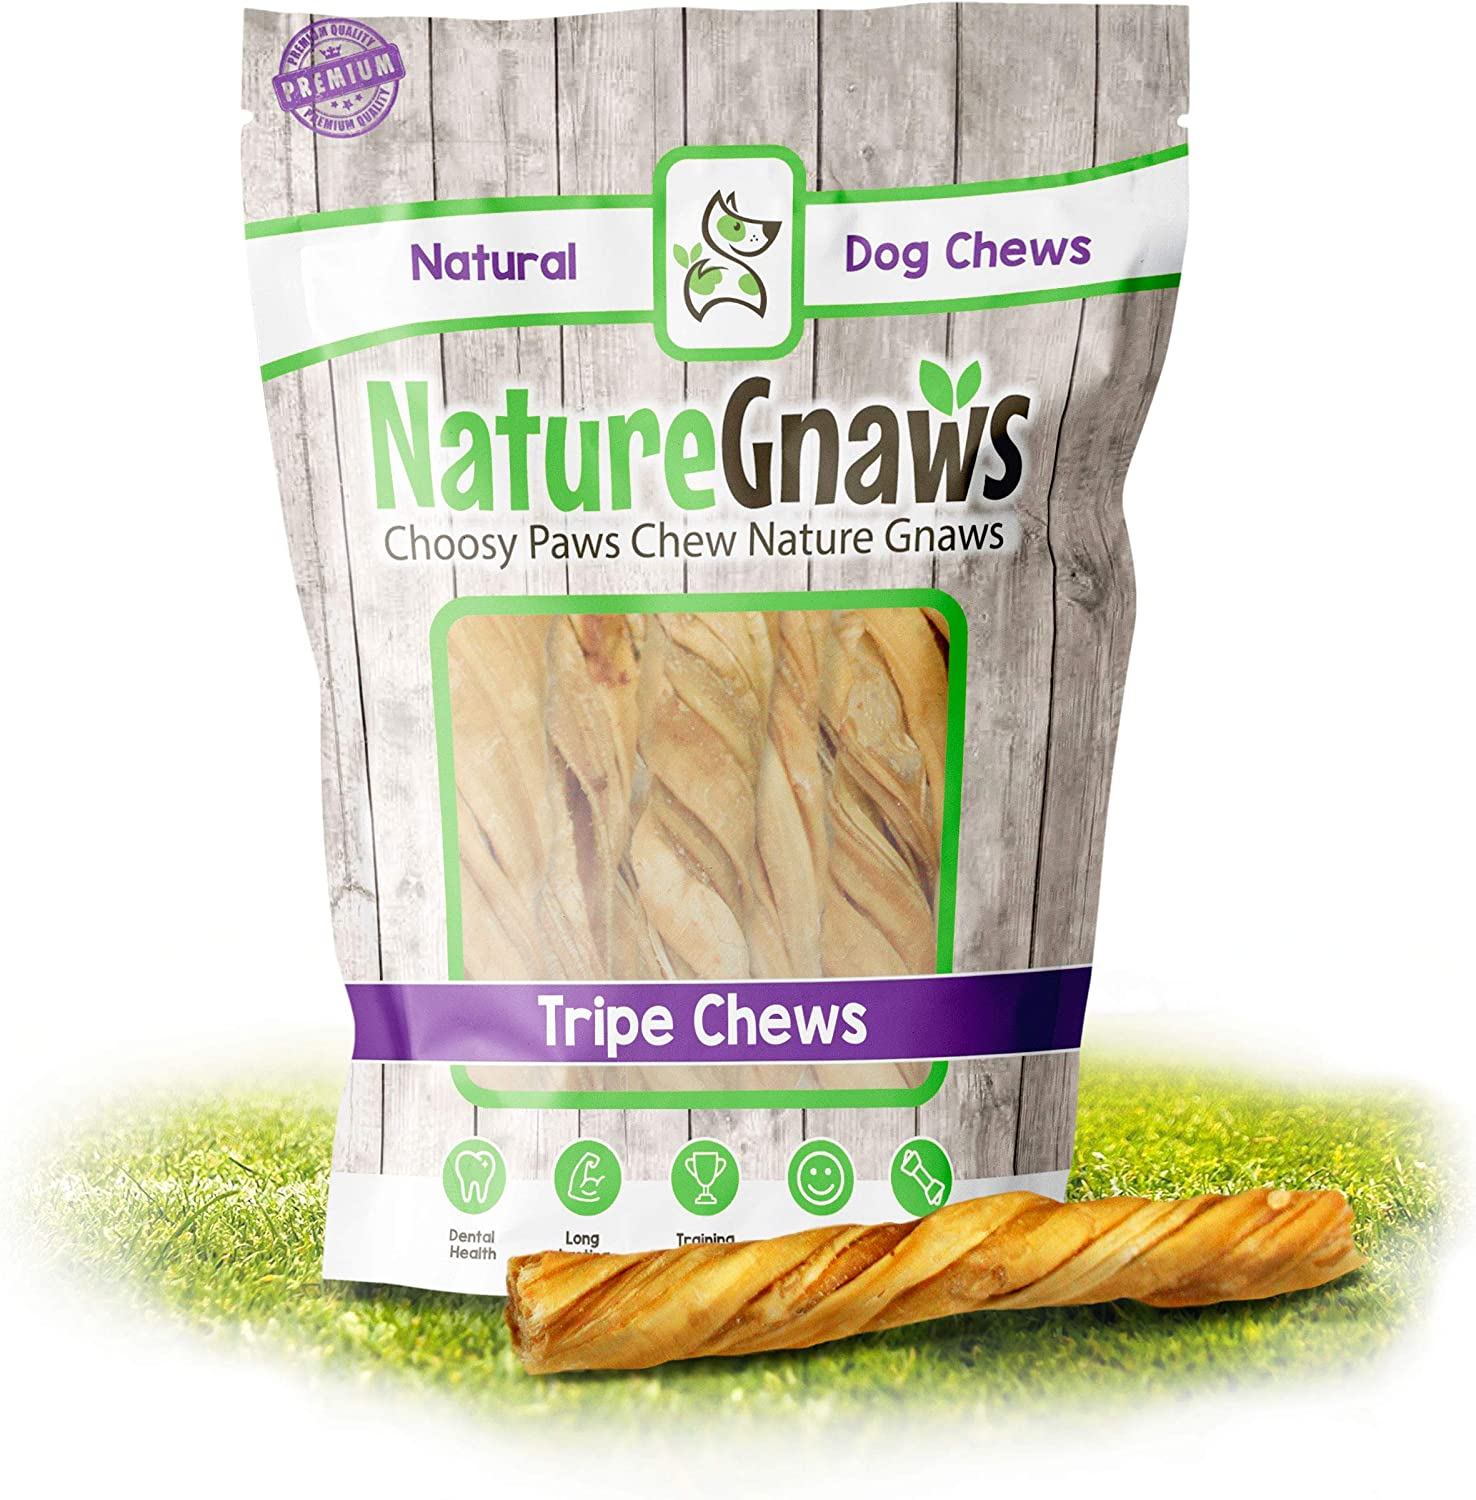 Nature Gnaws Tripe Twists for Dogs - Premium Natural Beef Sticks - Simple Single Ingredient Crunchy Dog Chew Treats - Rawhide Free - 4-5 Inch (10 Count)